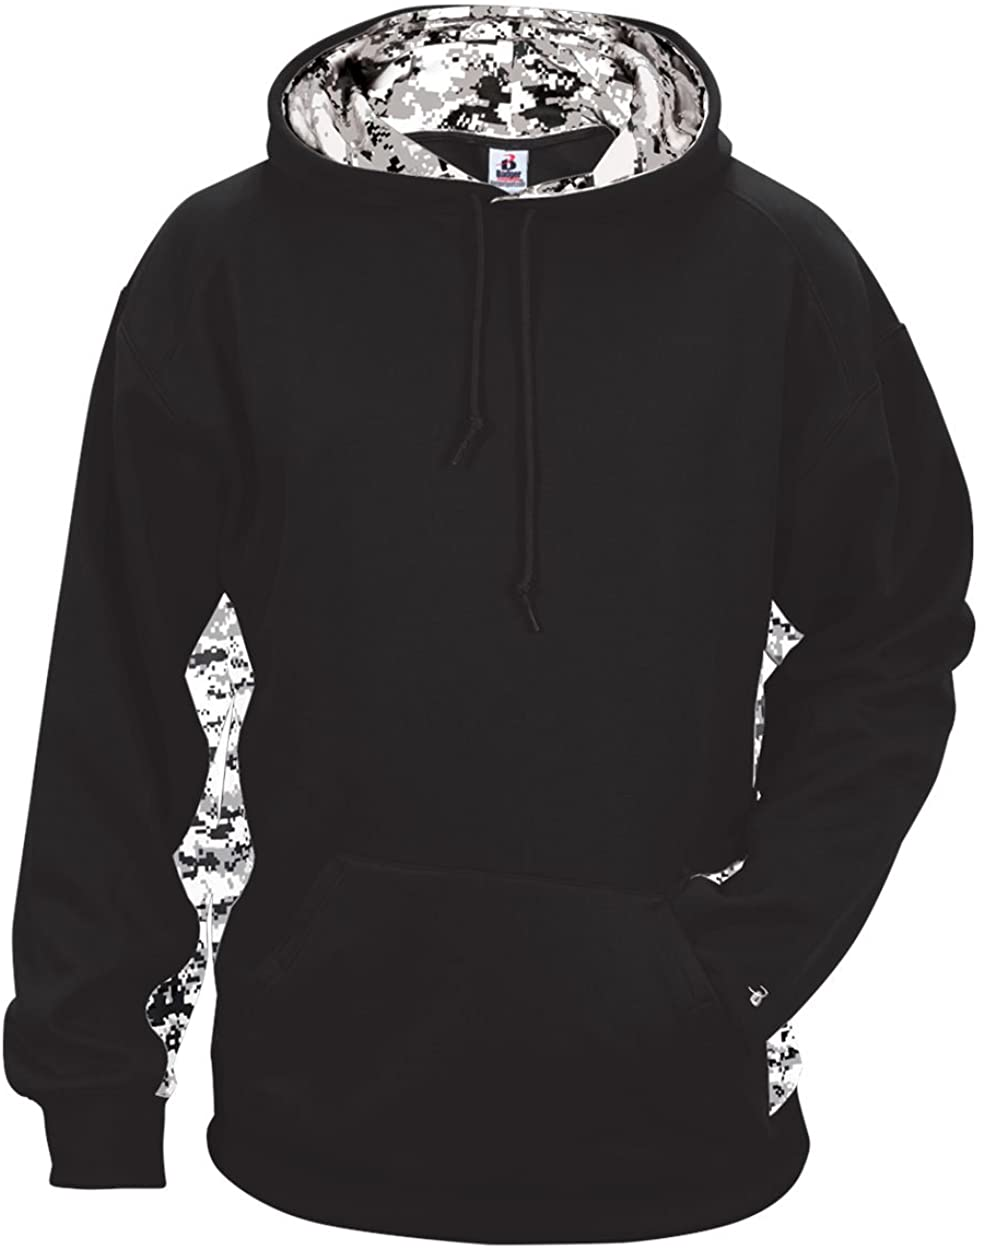 Badger Sport Black Adult Large with White Digi-Camo Sides and Inner-Hoodie